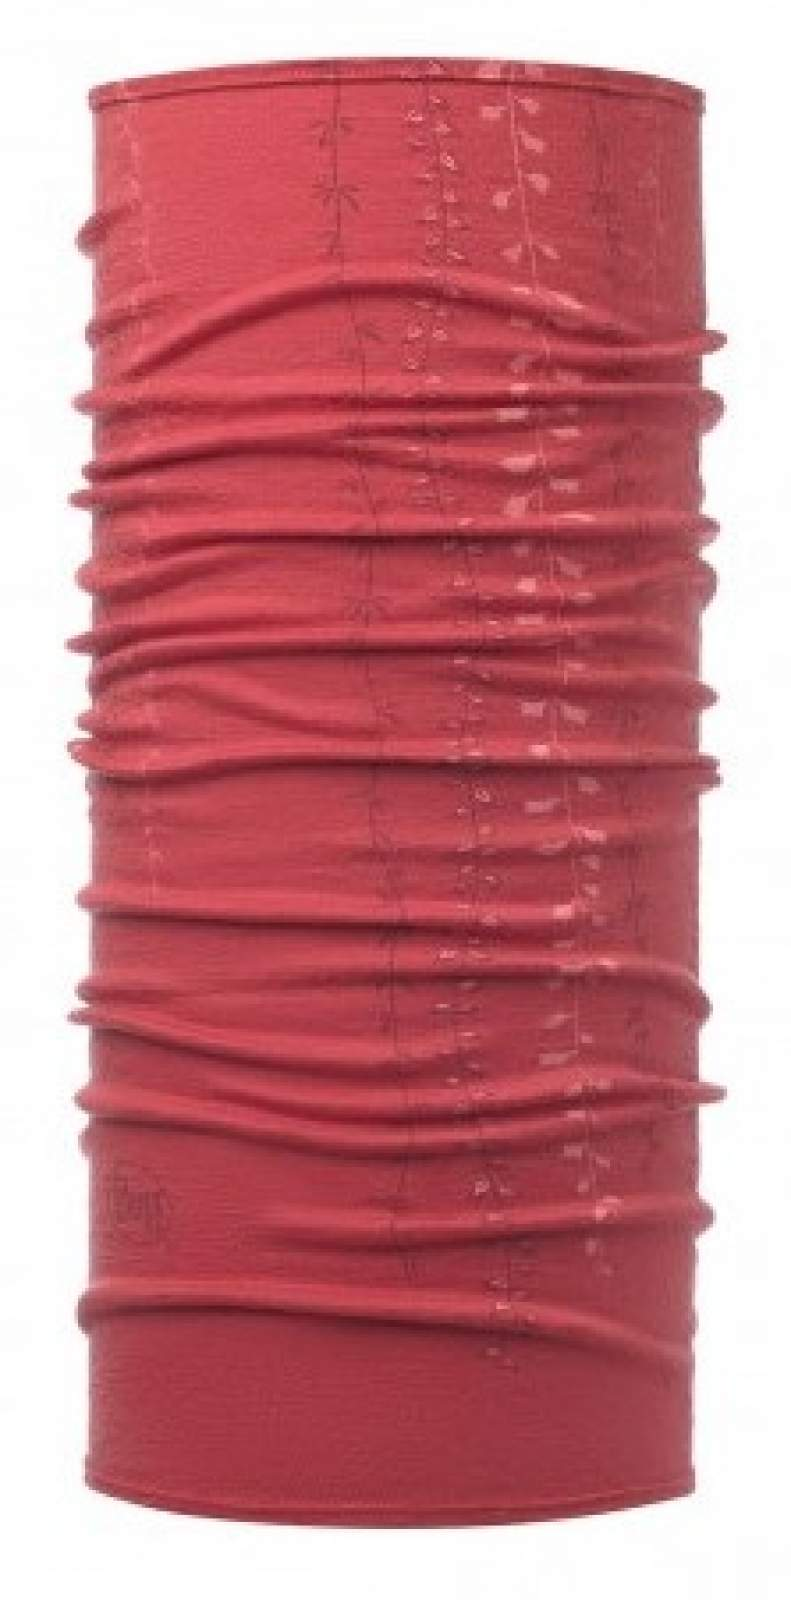 Бандана Buff Lightweight Merino Wool Buff® NIAH SCARLETT RED шерстяная